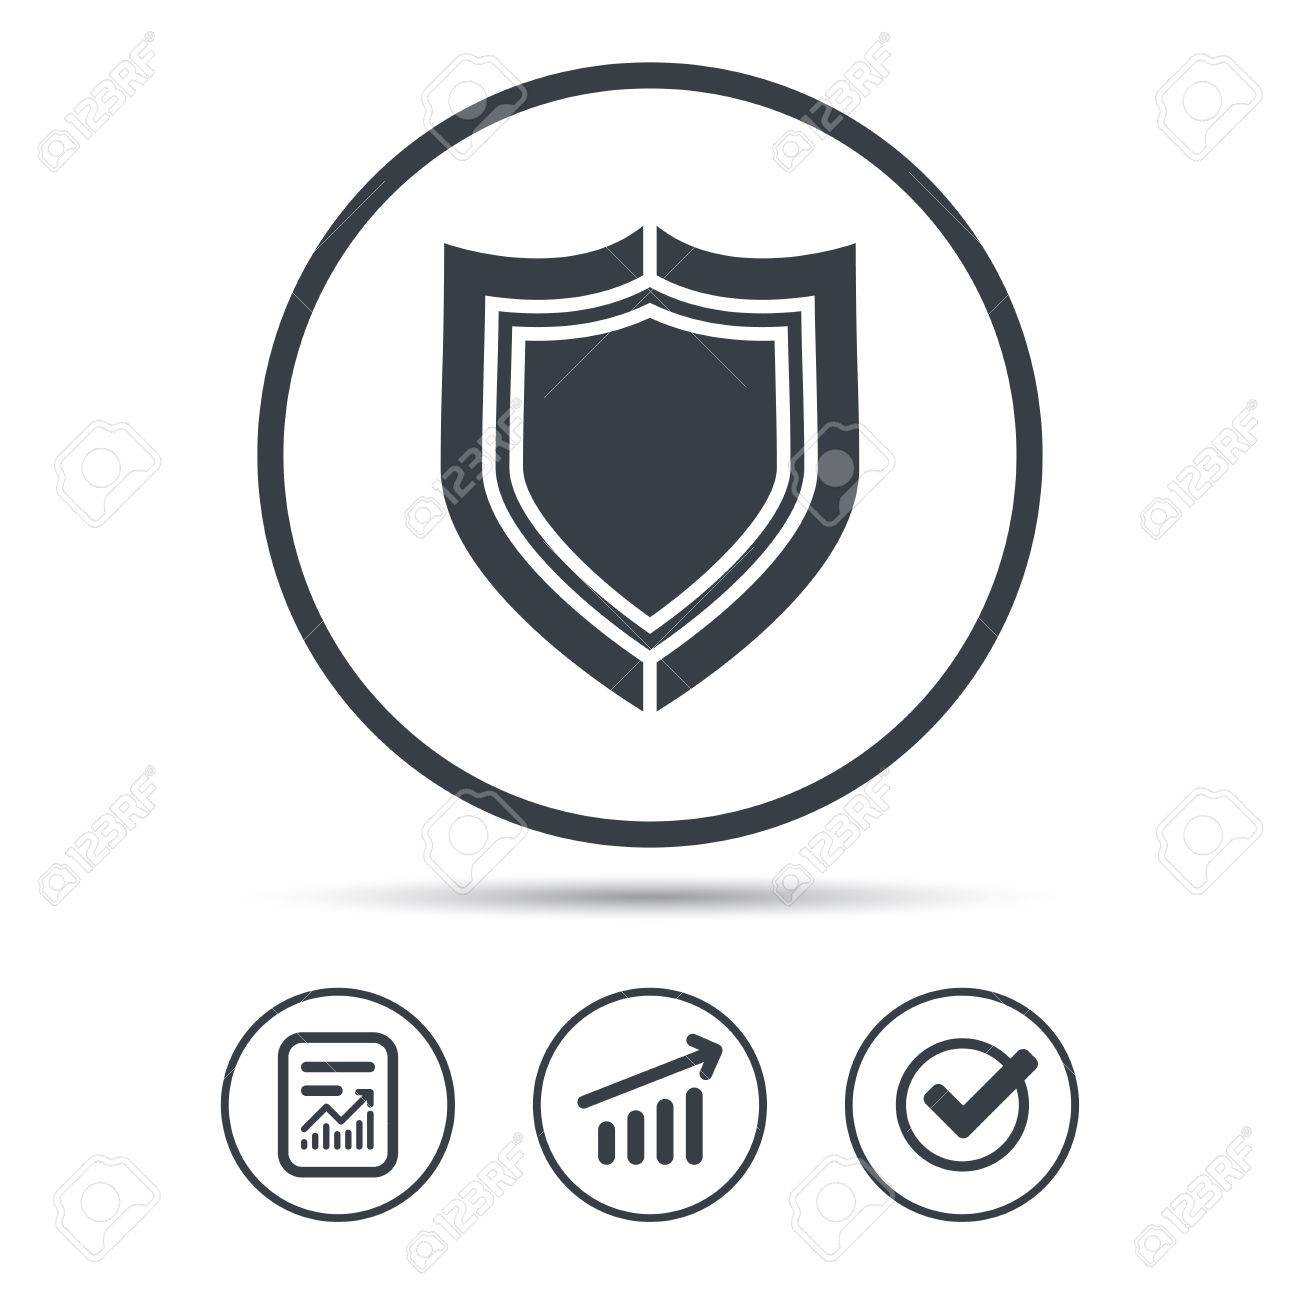 Symbol for protection sigils for protection origin not stated shield protection icon defense equipment symbol report document biocorpaavc Gallery